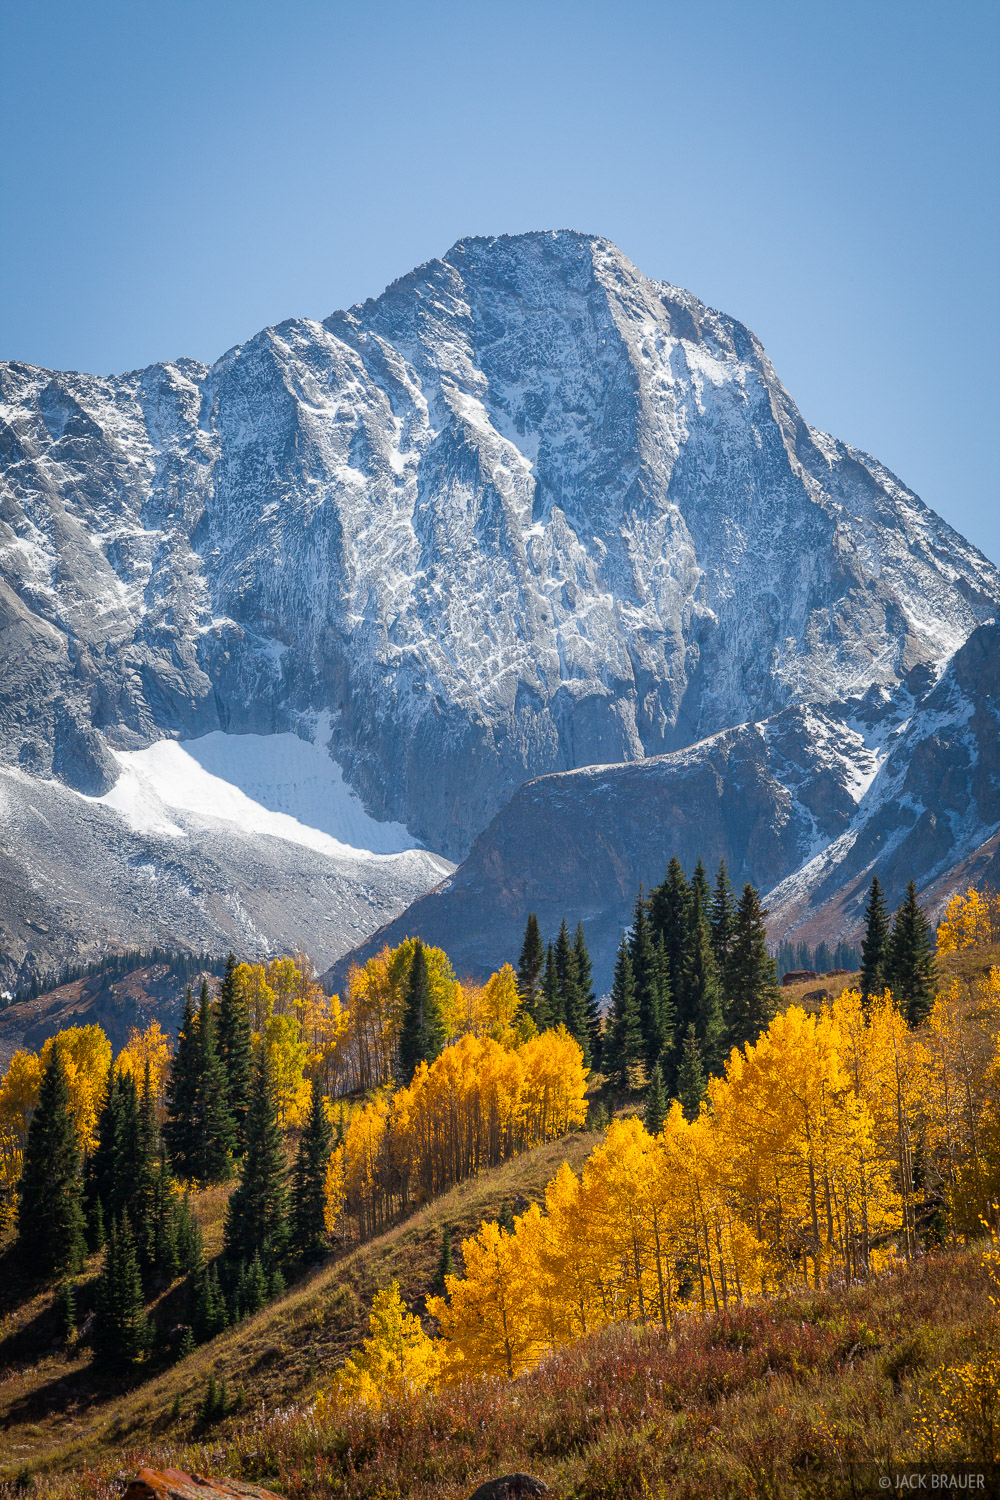 Capitol Peak, Colorado, Elk Mountains, aspens, autumn, fall, Maroon Bells-Snowmass Wilderness, photo